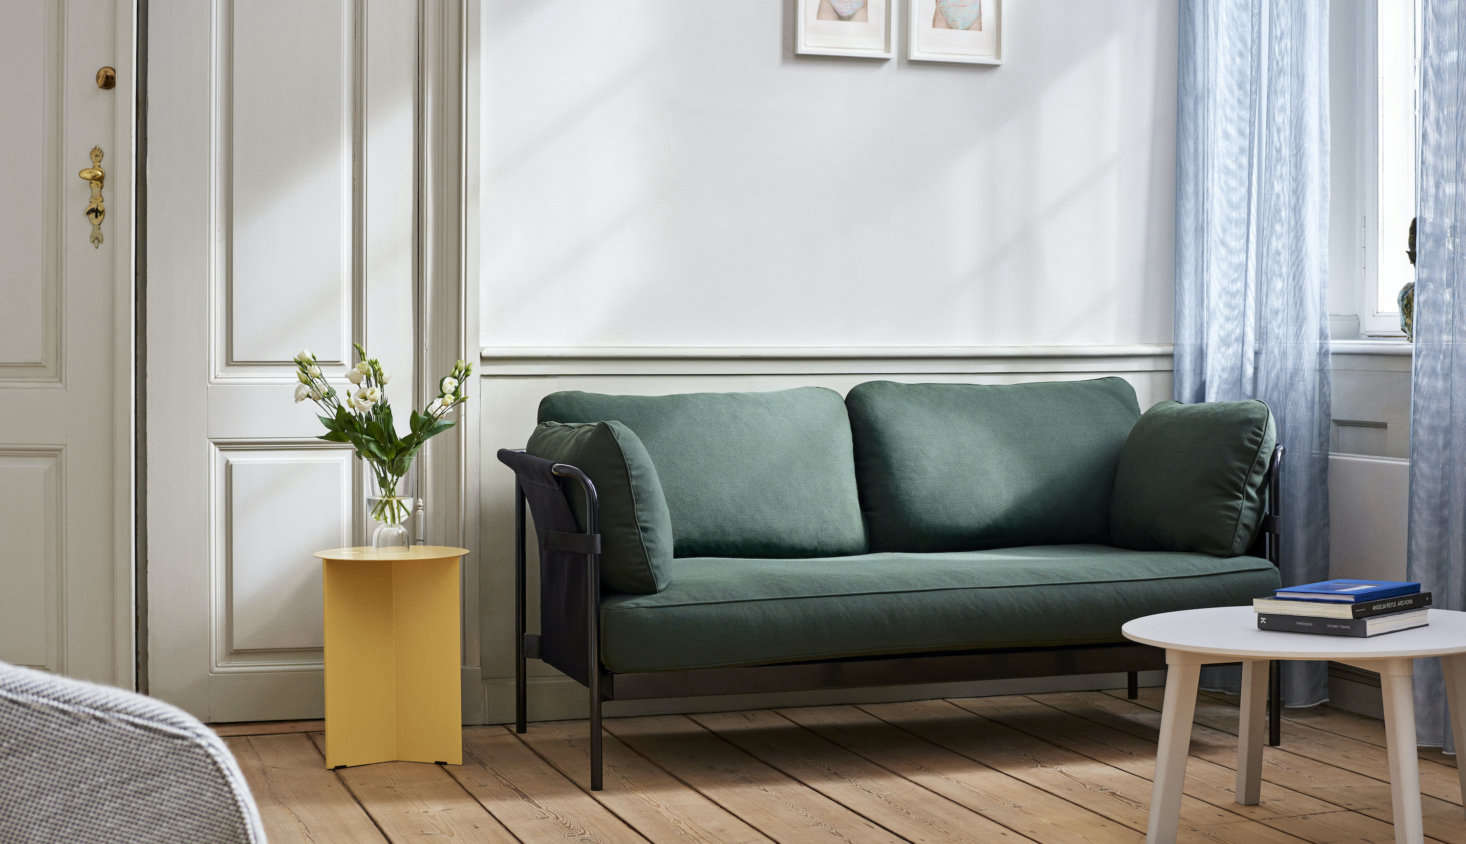 A favorite from the Can Collection: The flat-pack, easy-going Can Sofa (from $